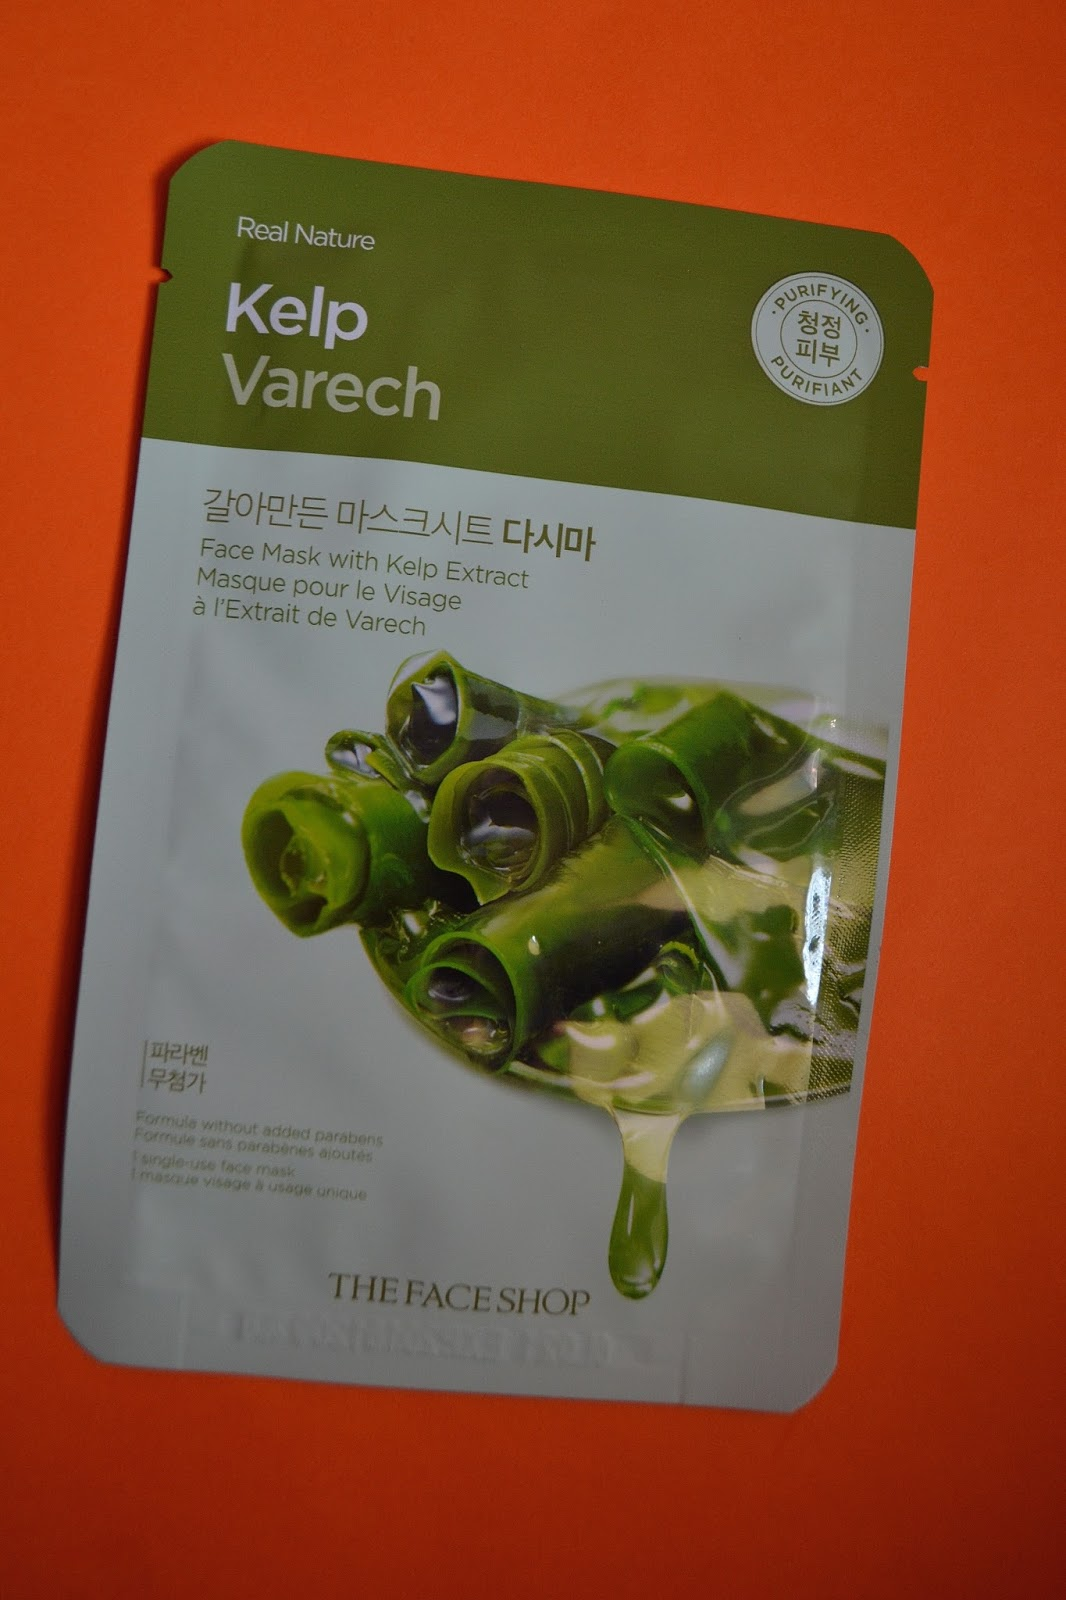 Compact Matters The Face Shop Real Nature Masks Reviews Mask Sheet Kelp Helps Purify Your Skin